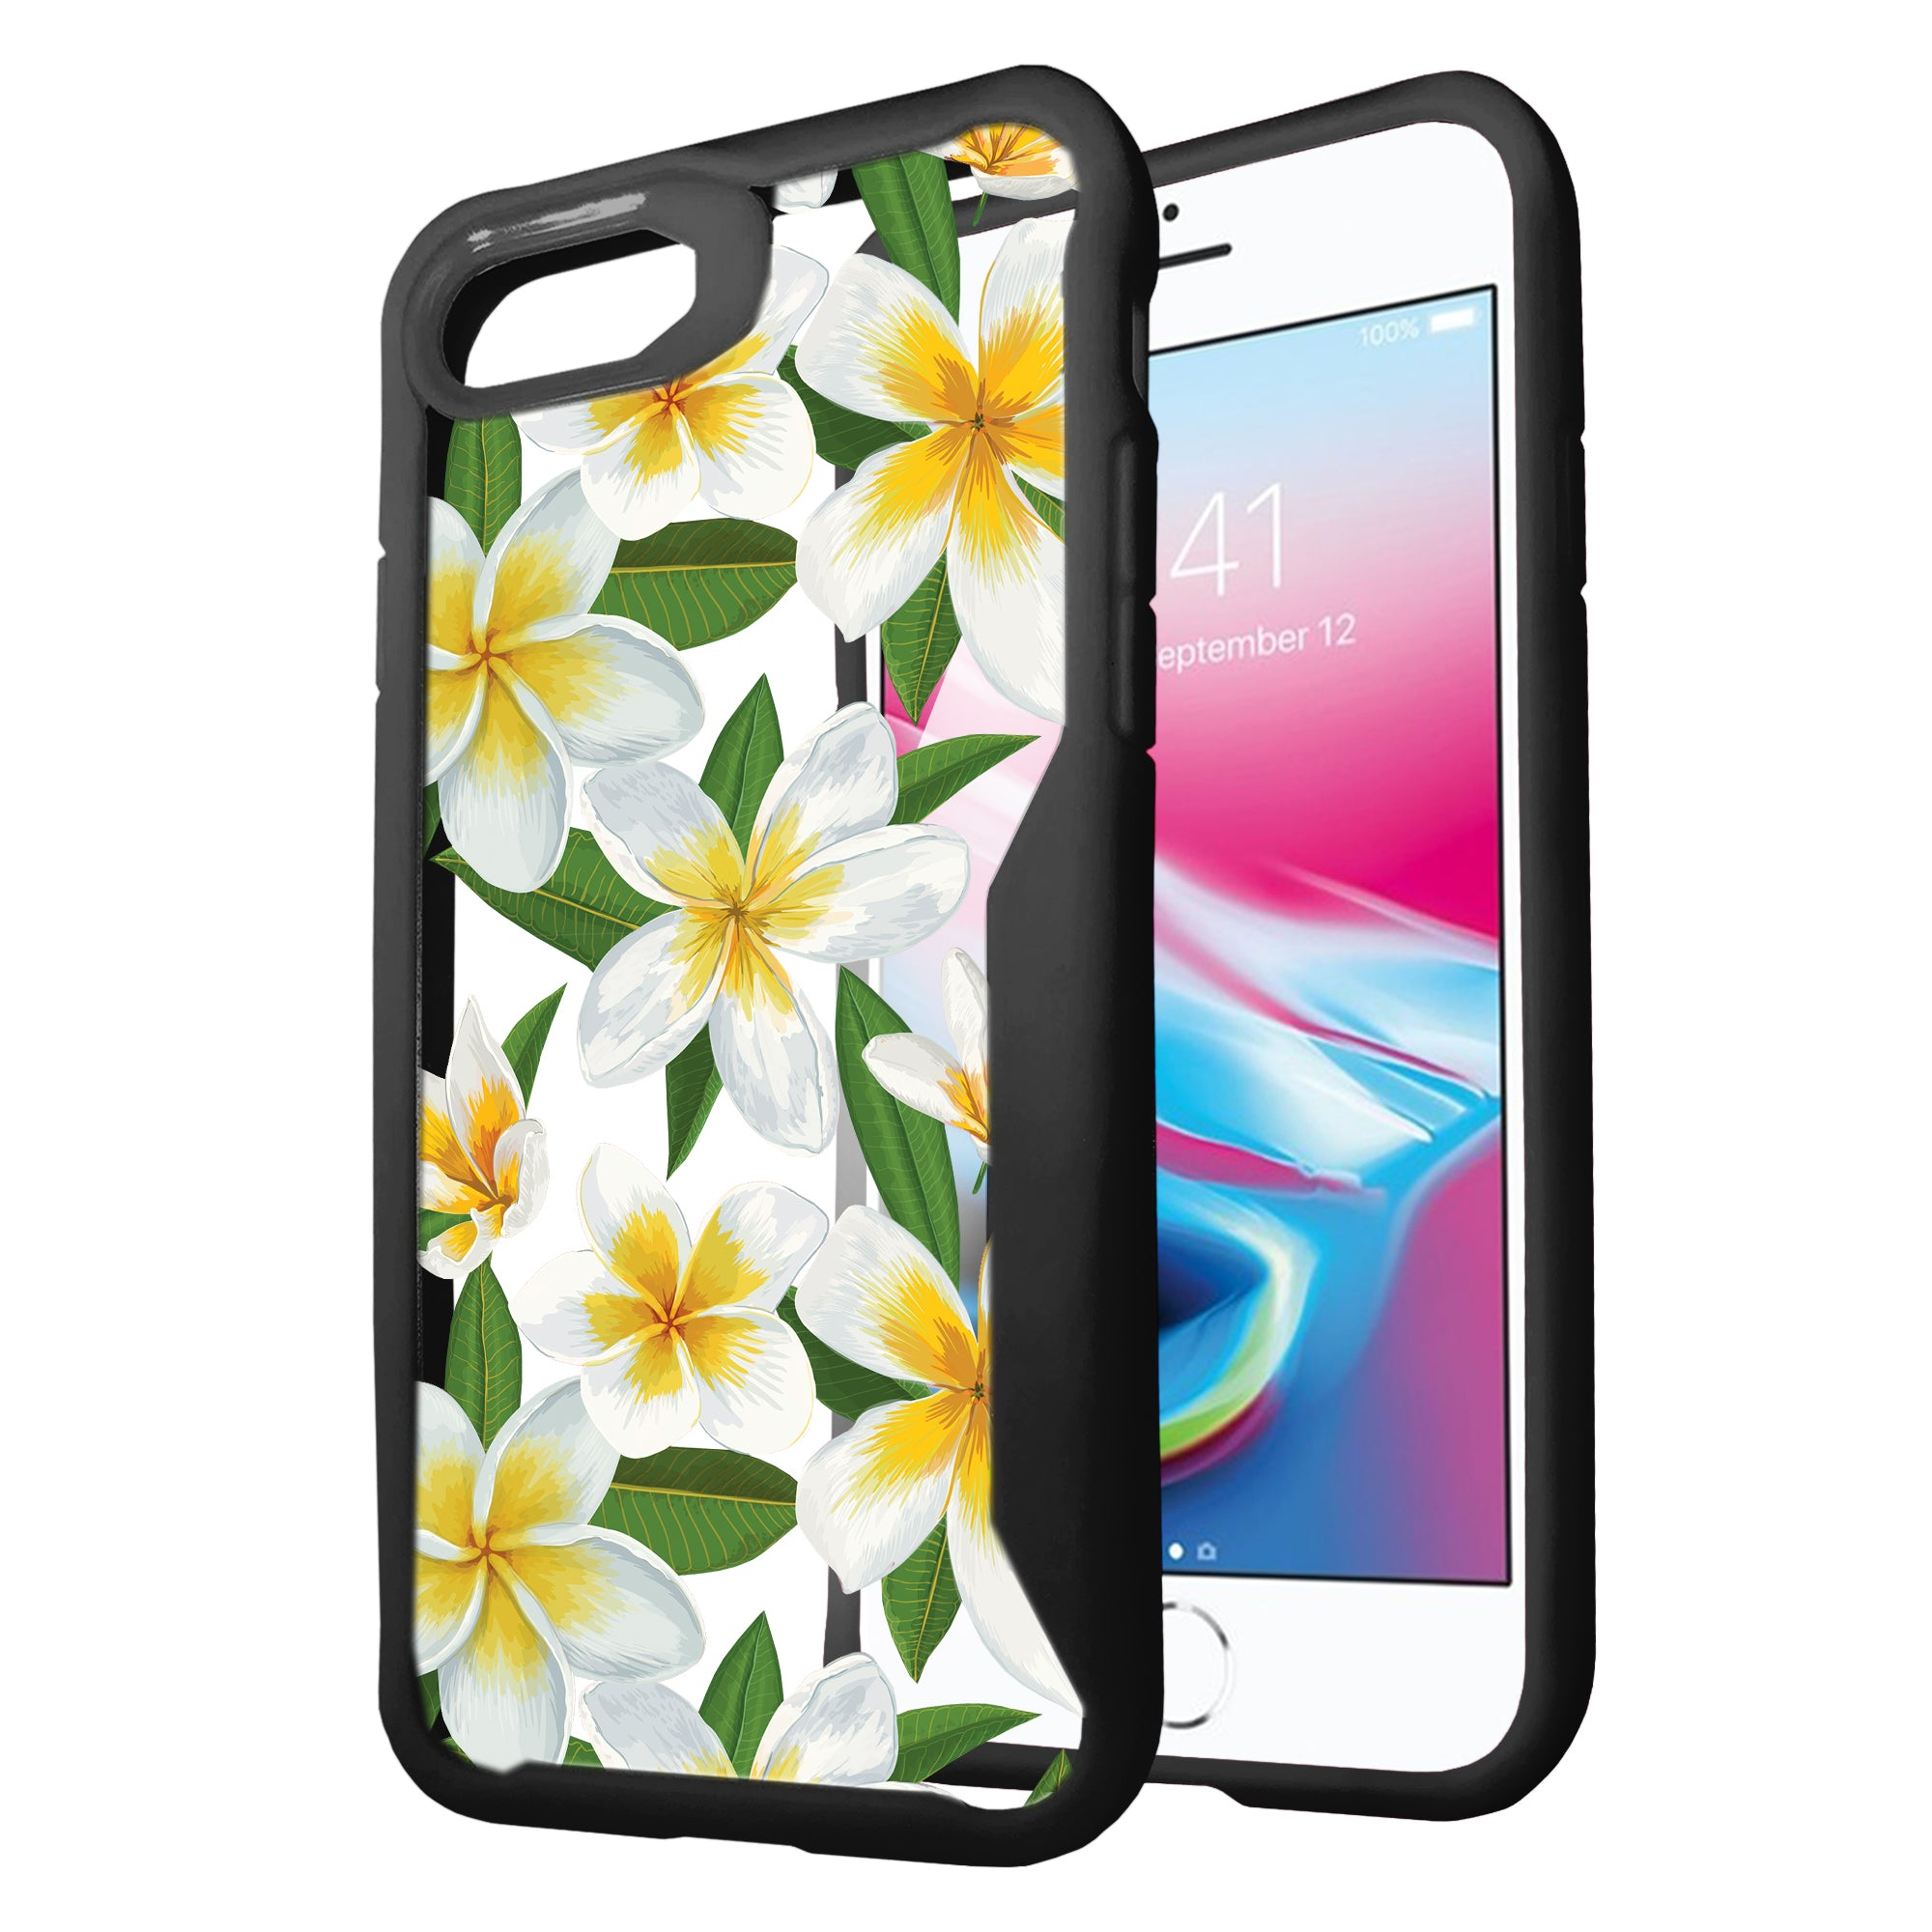 For-Apple-iPhone-8-Plus-Clear-Case-with-Black-Silicone-Edges-Floral-Design thumbnail 5